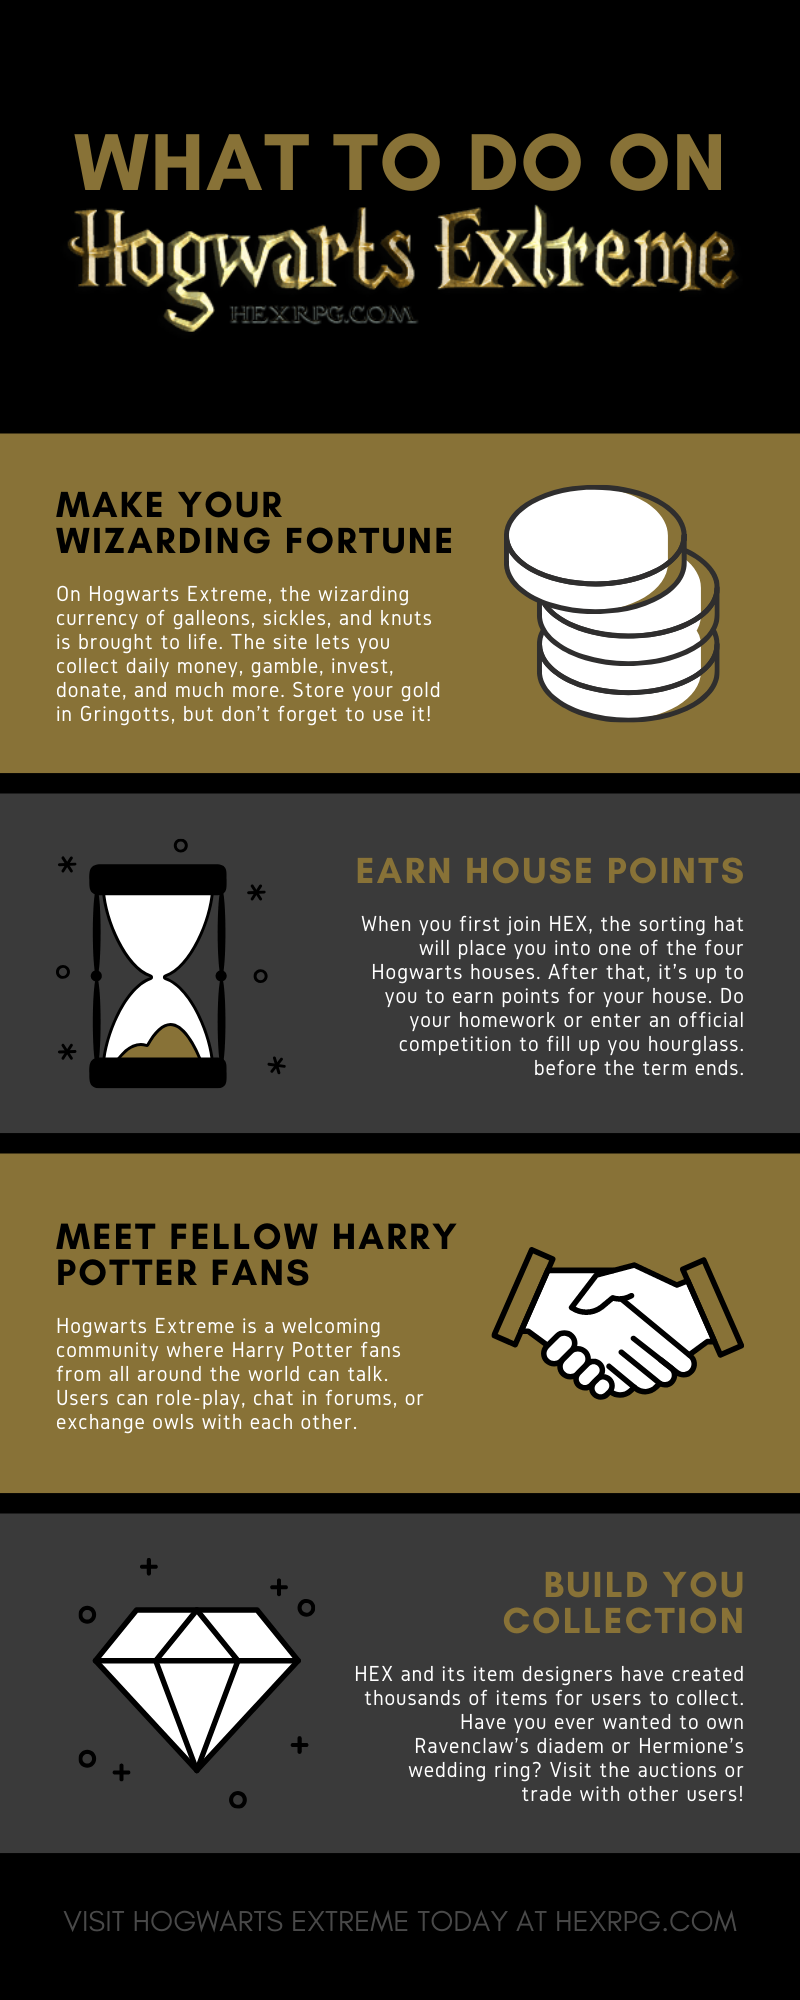 Hex Hogwarts Extreme Harry Potter Fortune Galleons House Points Owls Role Playing Forums Diadem Her Hogwarts Extreme Hogwarts Harry Potter Experience